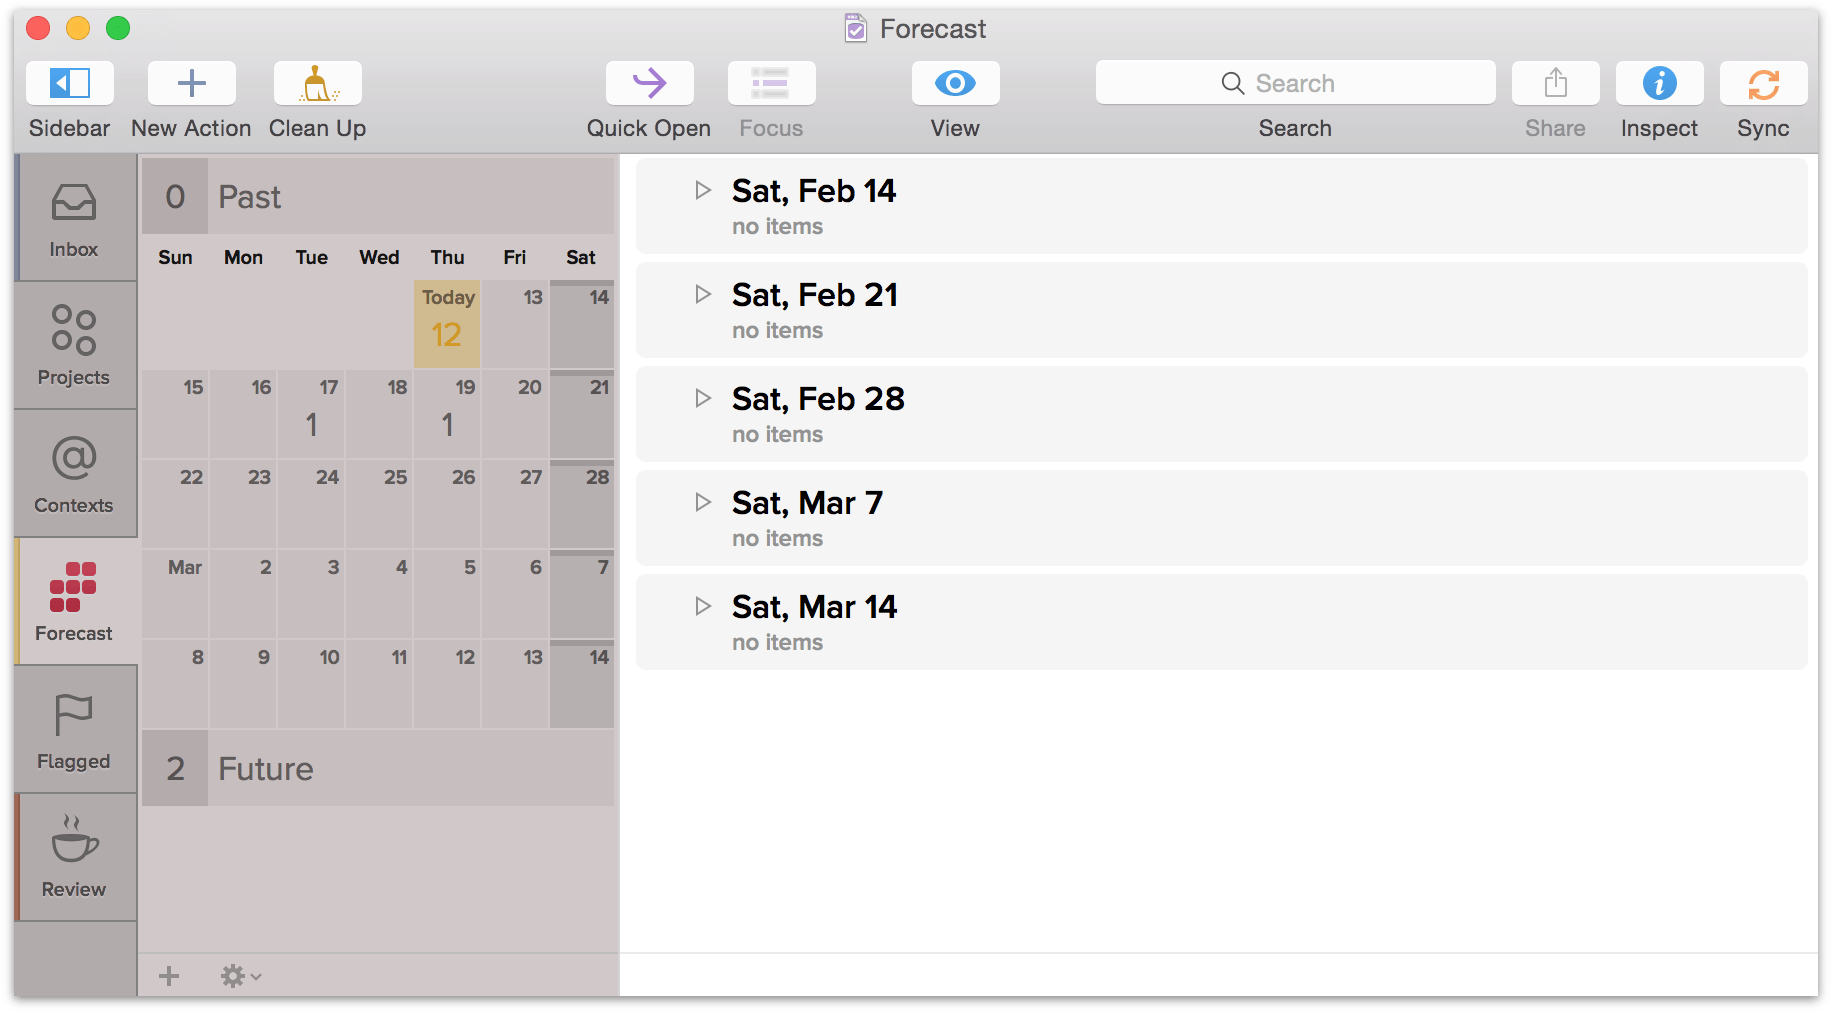 Command-click the dates you want so you can see what's happening on those days